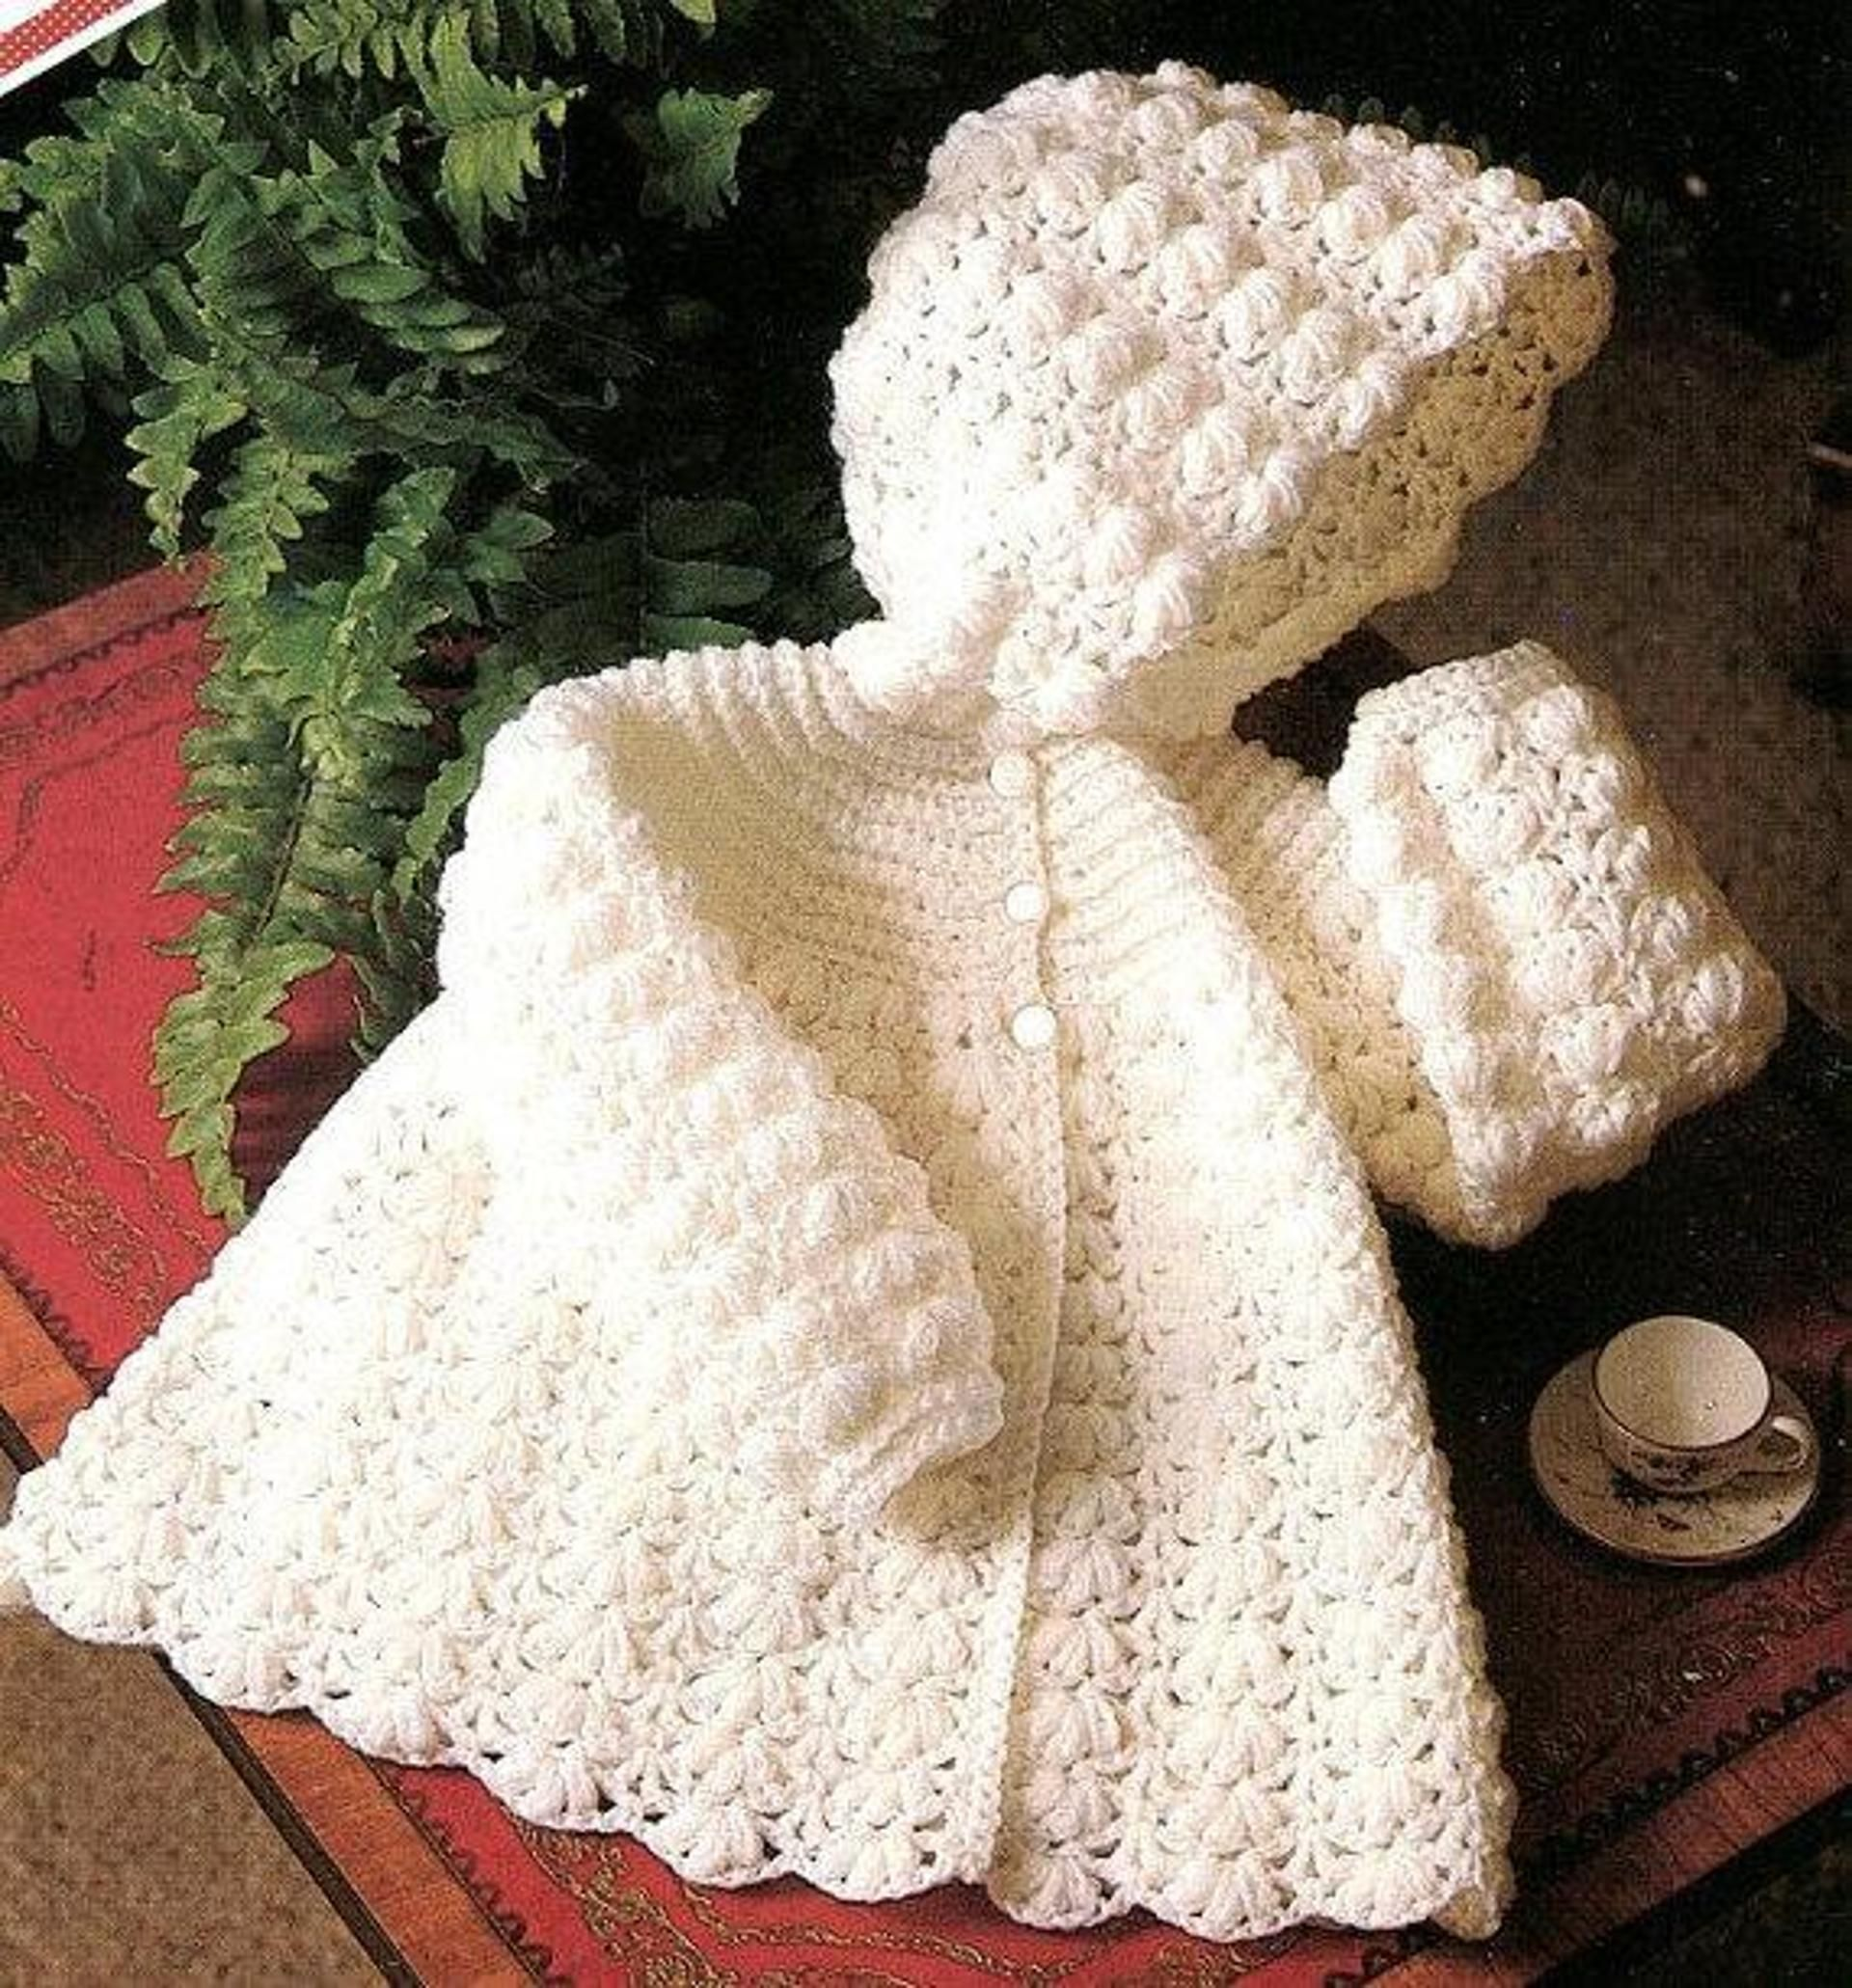 Crochet pattern vintage baby sweater baby sweaters crochet and crochet pattern vintage baby sweater bankloansurffo Image collections